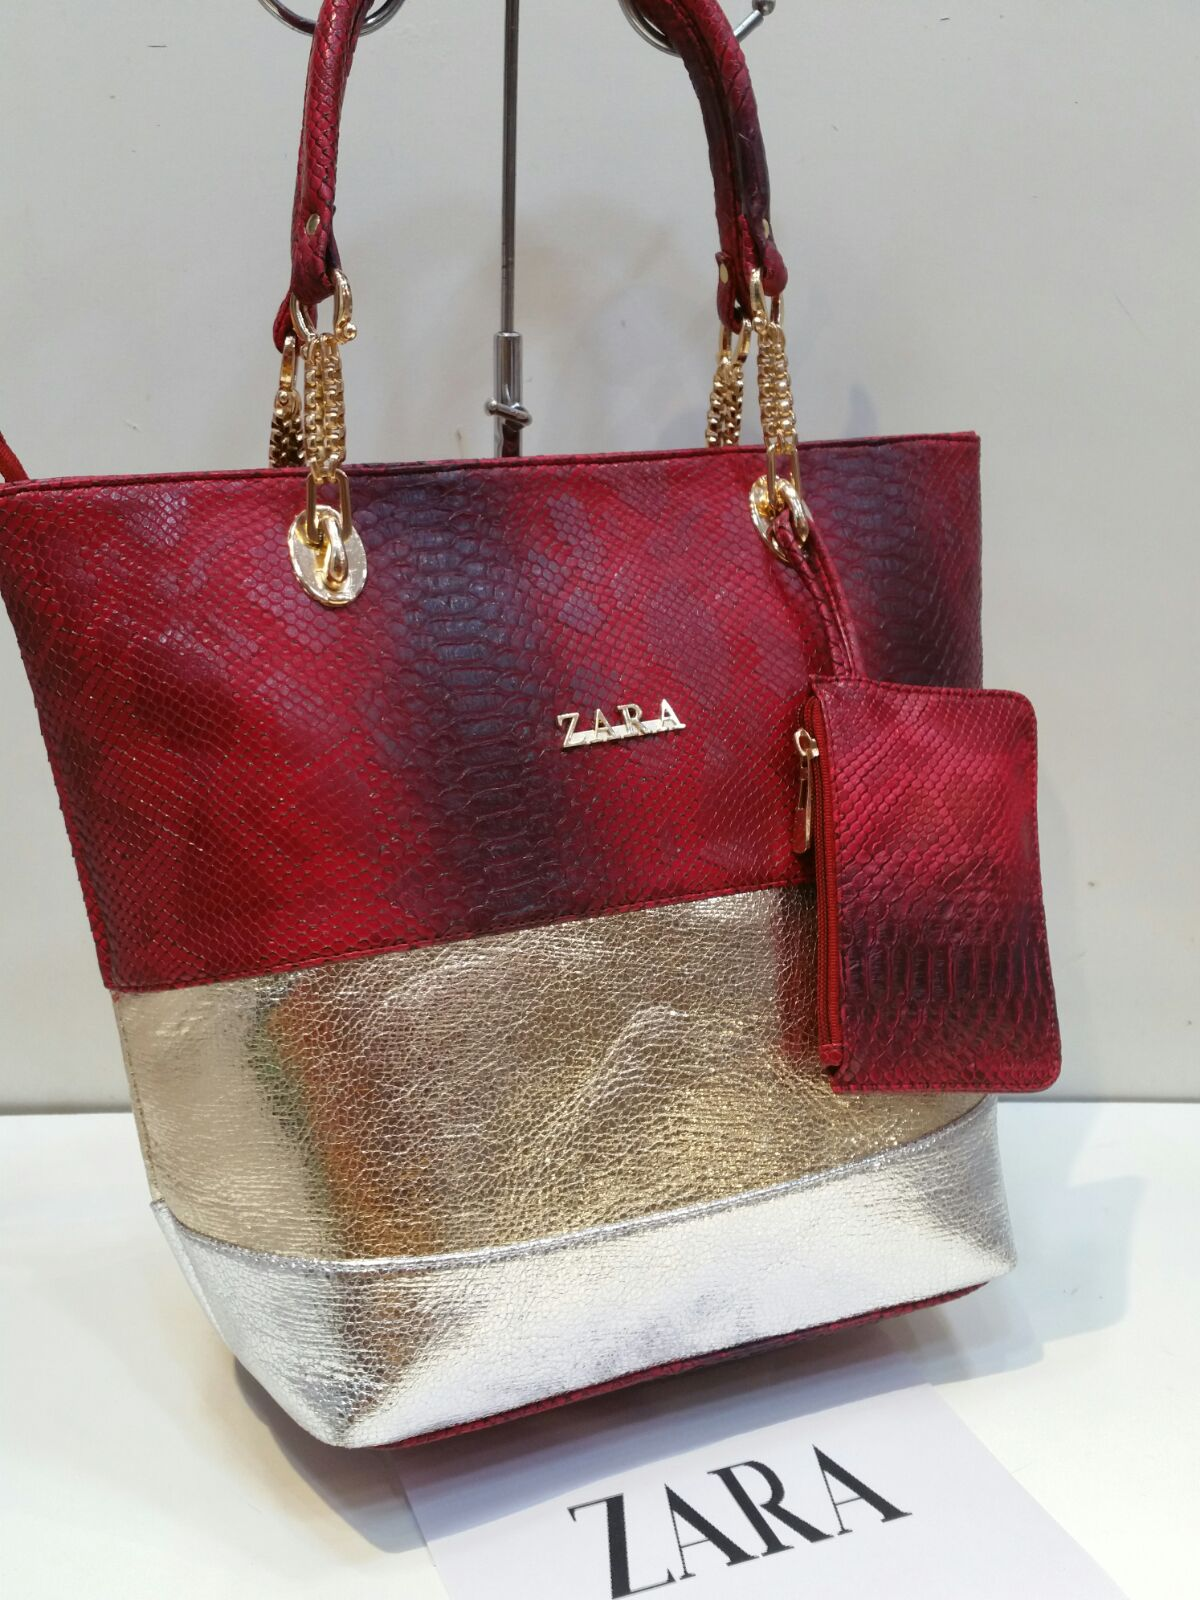 Zara Bags By Sara S Collection Online Ping For Handbags In India 9540455